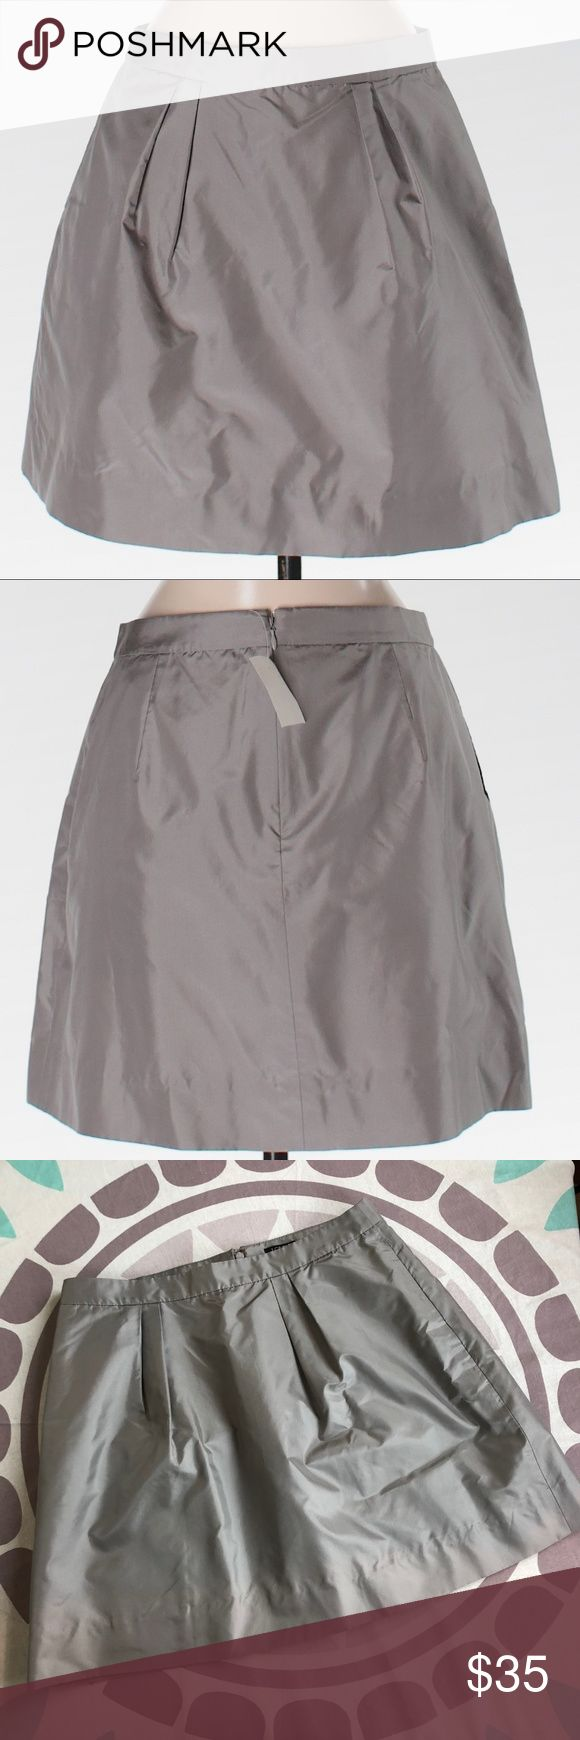 "NWT J. Crew Gray Taffeta Marvelle Mini Skirt 020 J. Crew Factory Women's Gray Taffeta Marvelle Mini Skirt  Zippered Back 100% Silk  Size 4 Style #46894 Waist: 15"" Wide Length: 16.5"" Long Excellent Condition, new with tags! J. Crew Factory Skirts"